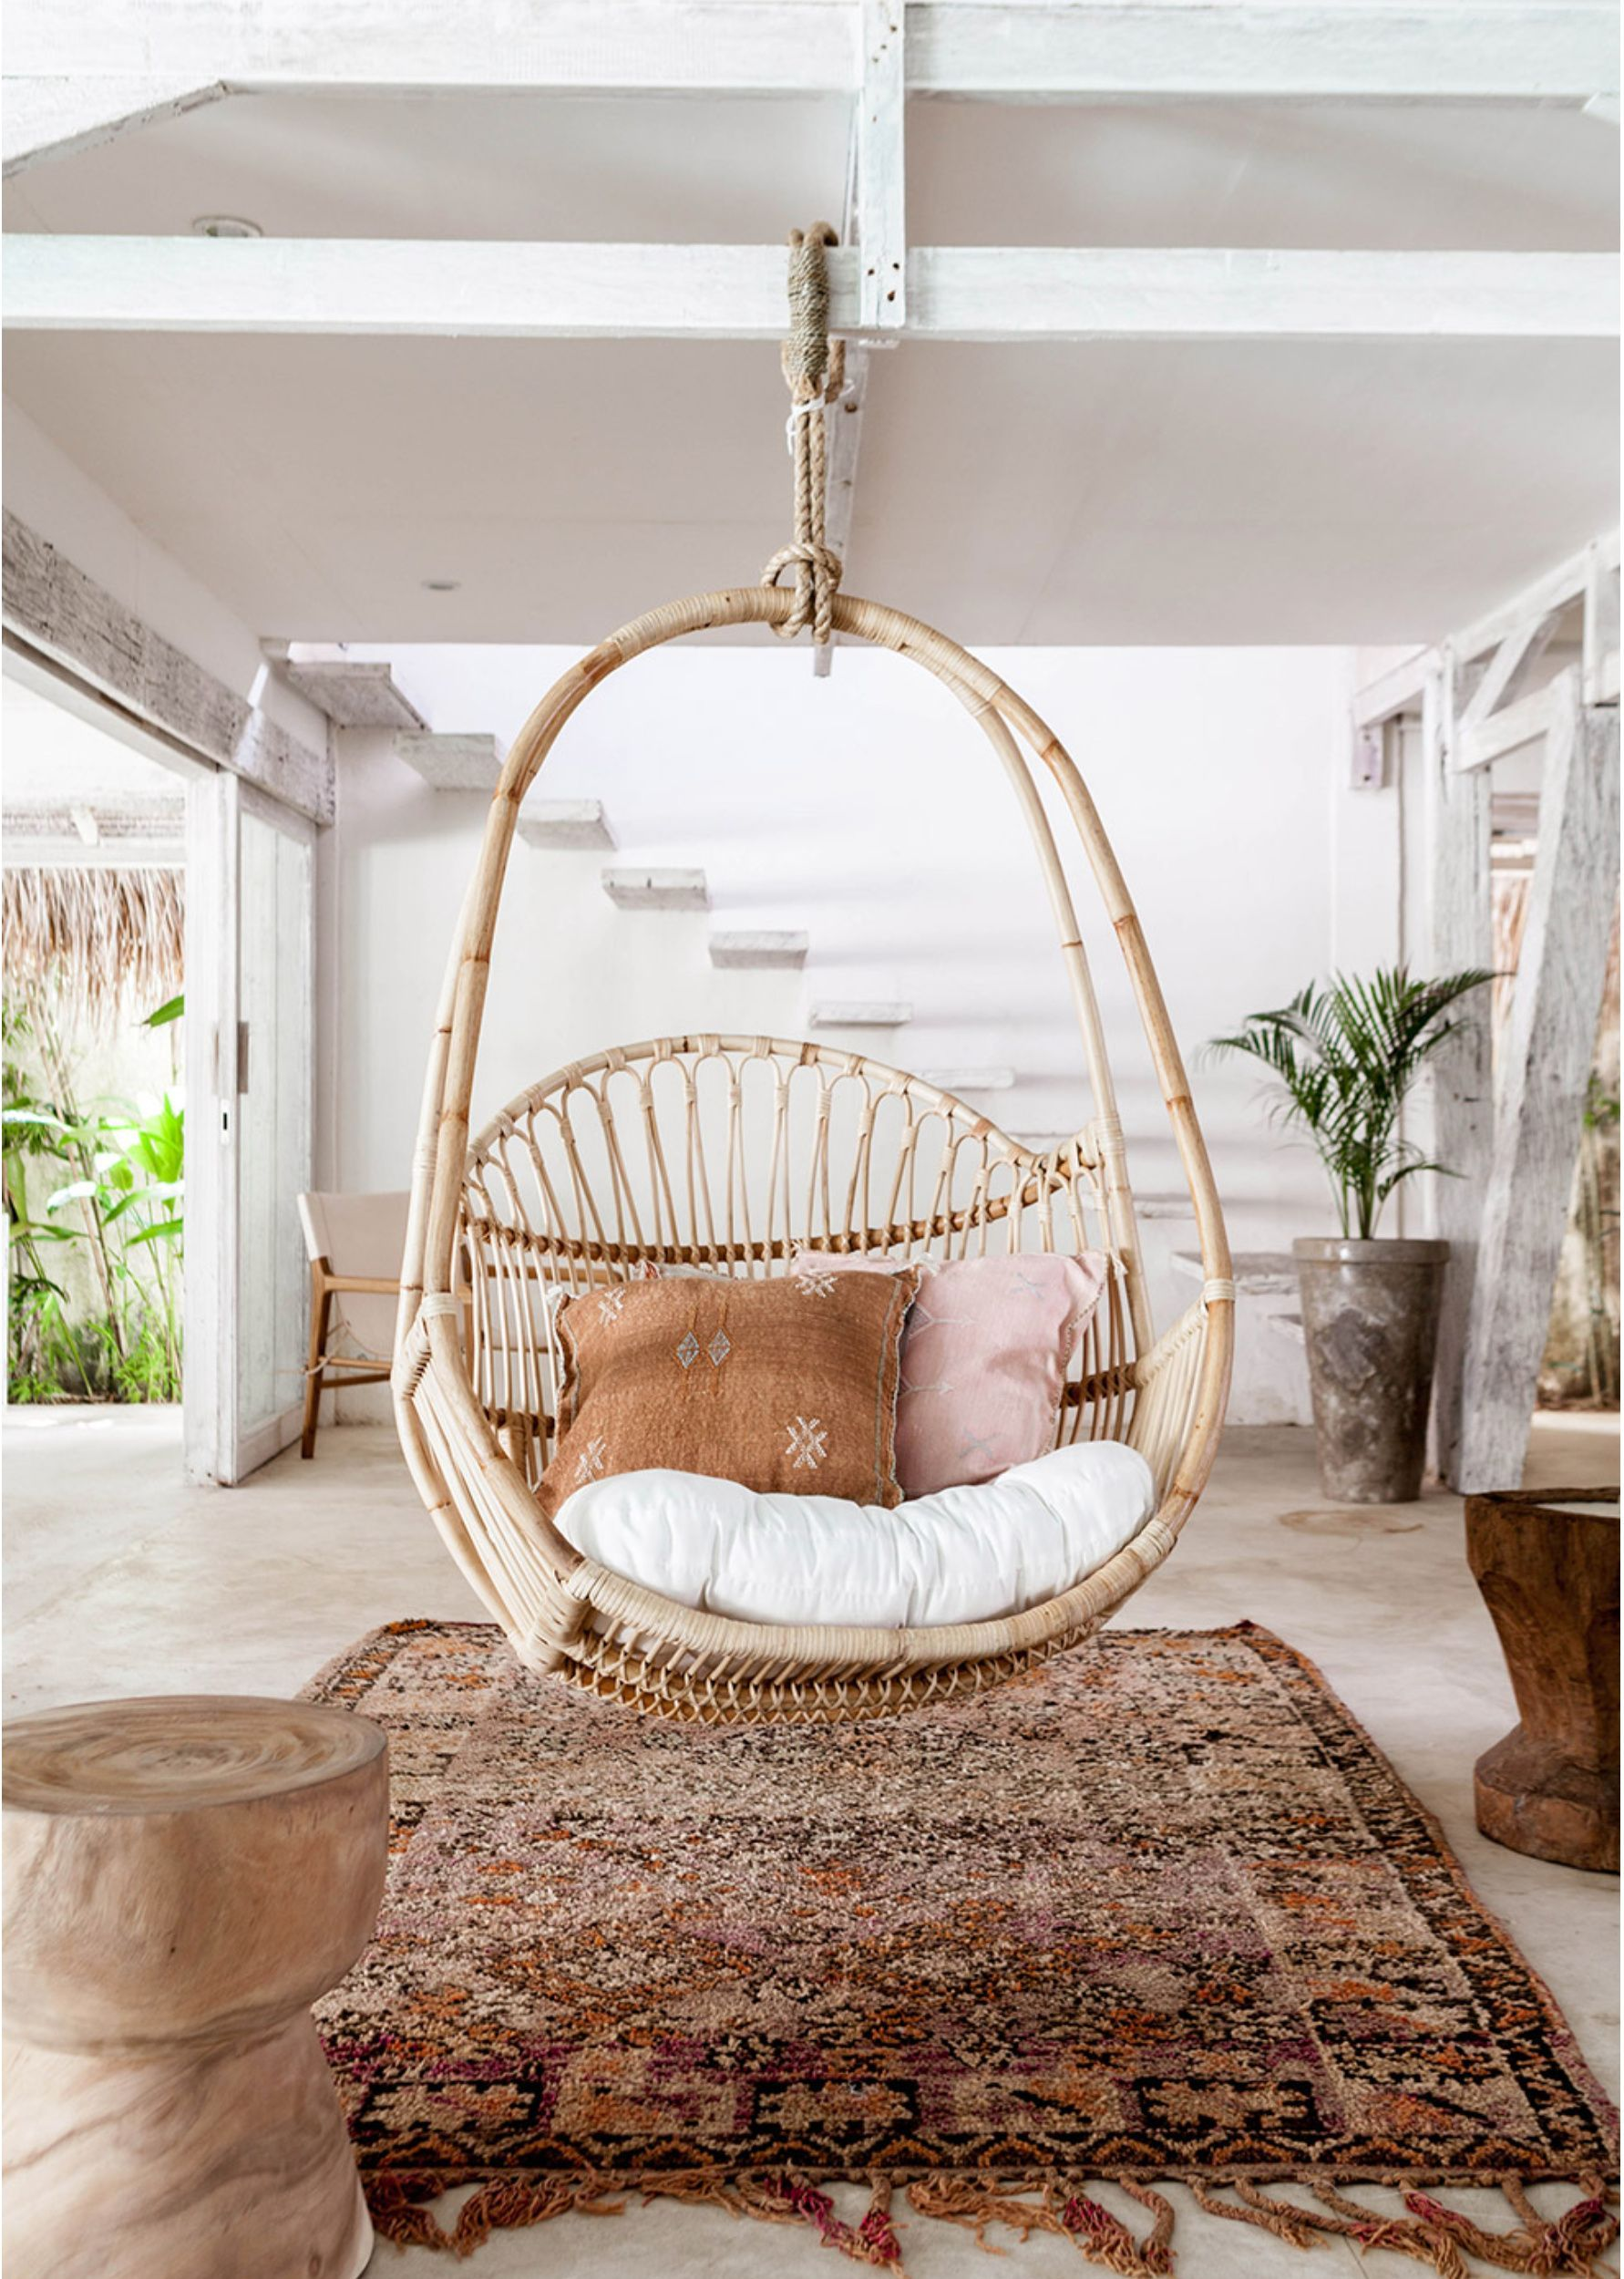 17 Stylish Boho Egg Chairs for Chic Patio Vibes - Pursuit ...